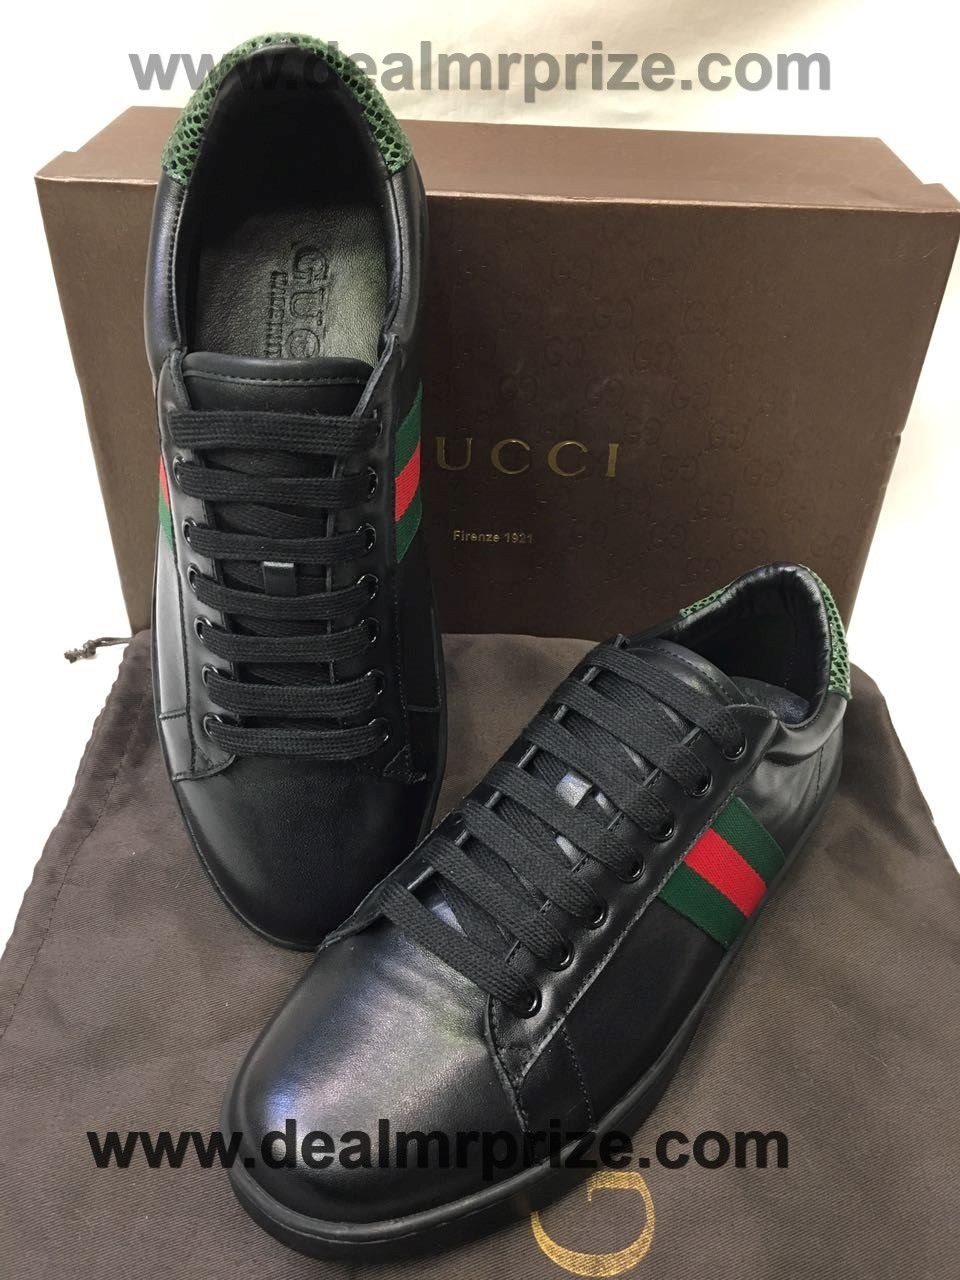 huge discount c879c a58a6 buy gucci shoes at best price in mumbai delhi bangalore hyderabad chennai  kochi chandigarh pune surat